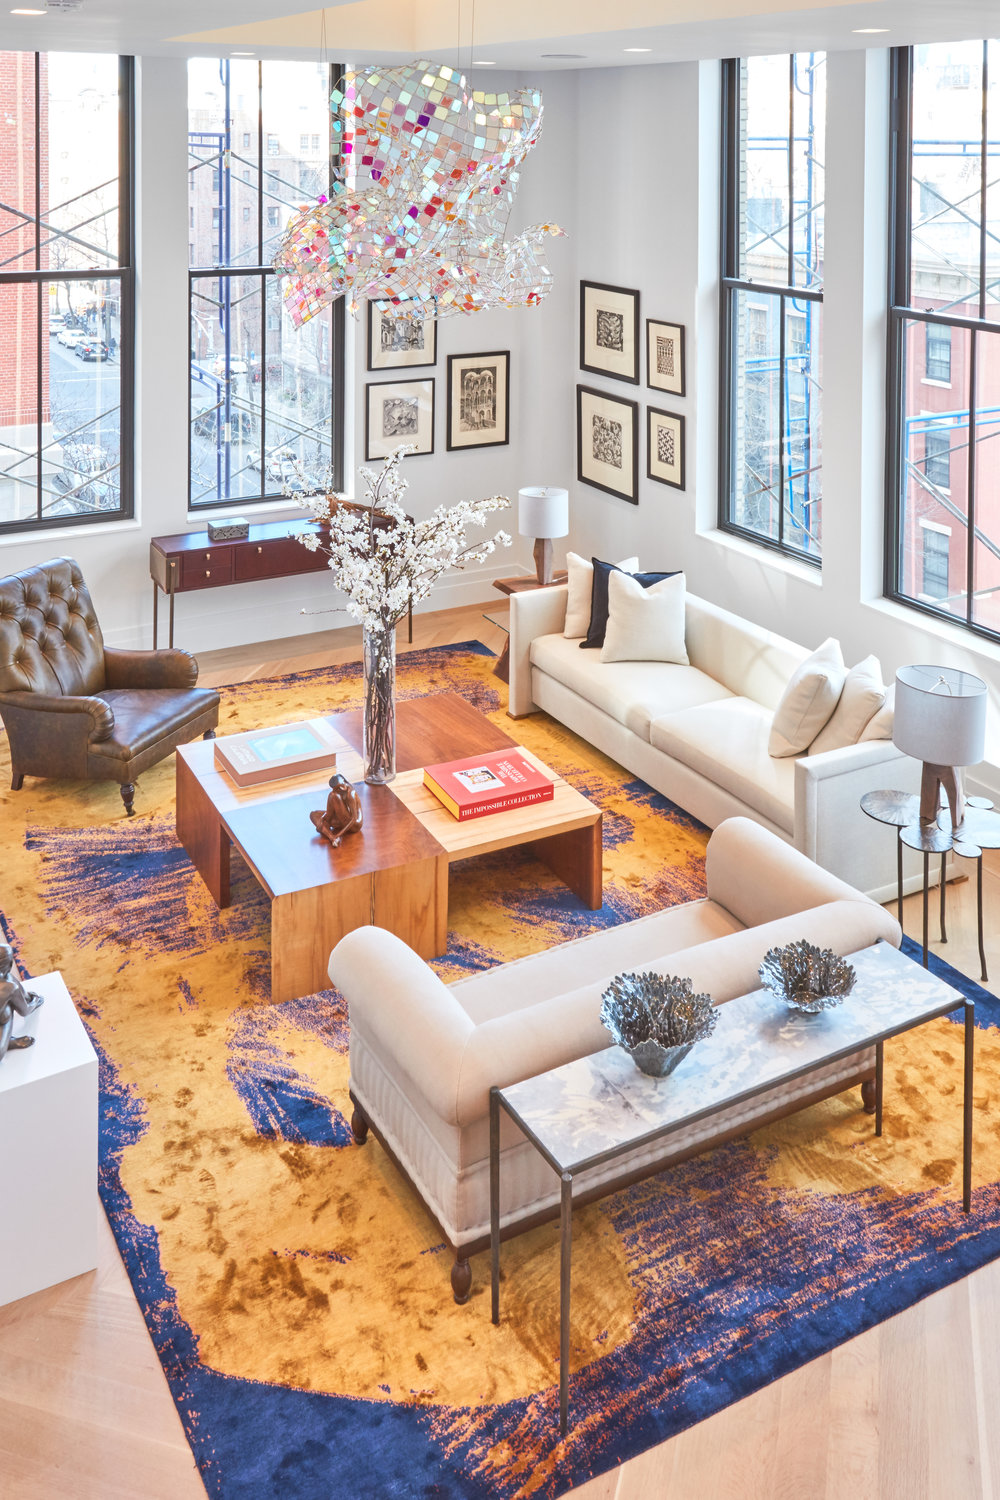 ArtfulLiving_WestVillage_21.jpg